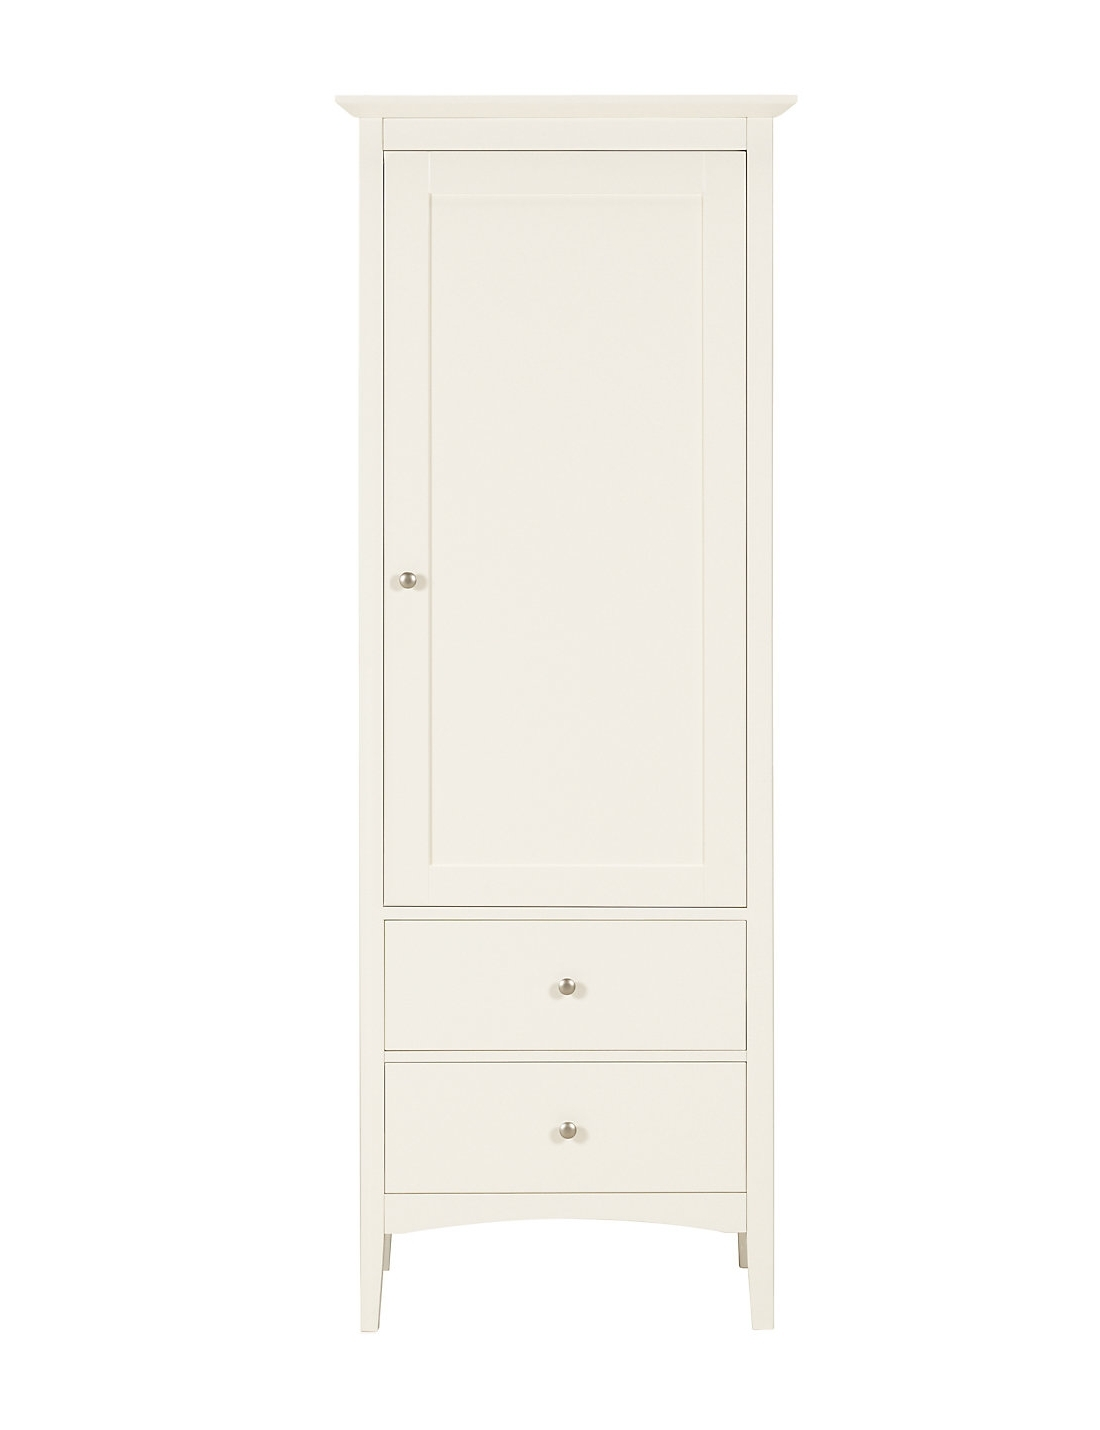 Single Wardrobes Within Most Up To Date Single Wardrobe Doors Mirror Door With Drawers Elegant Best Design (View 12 of 15)